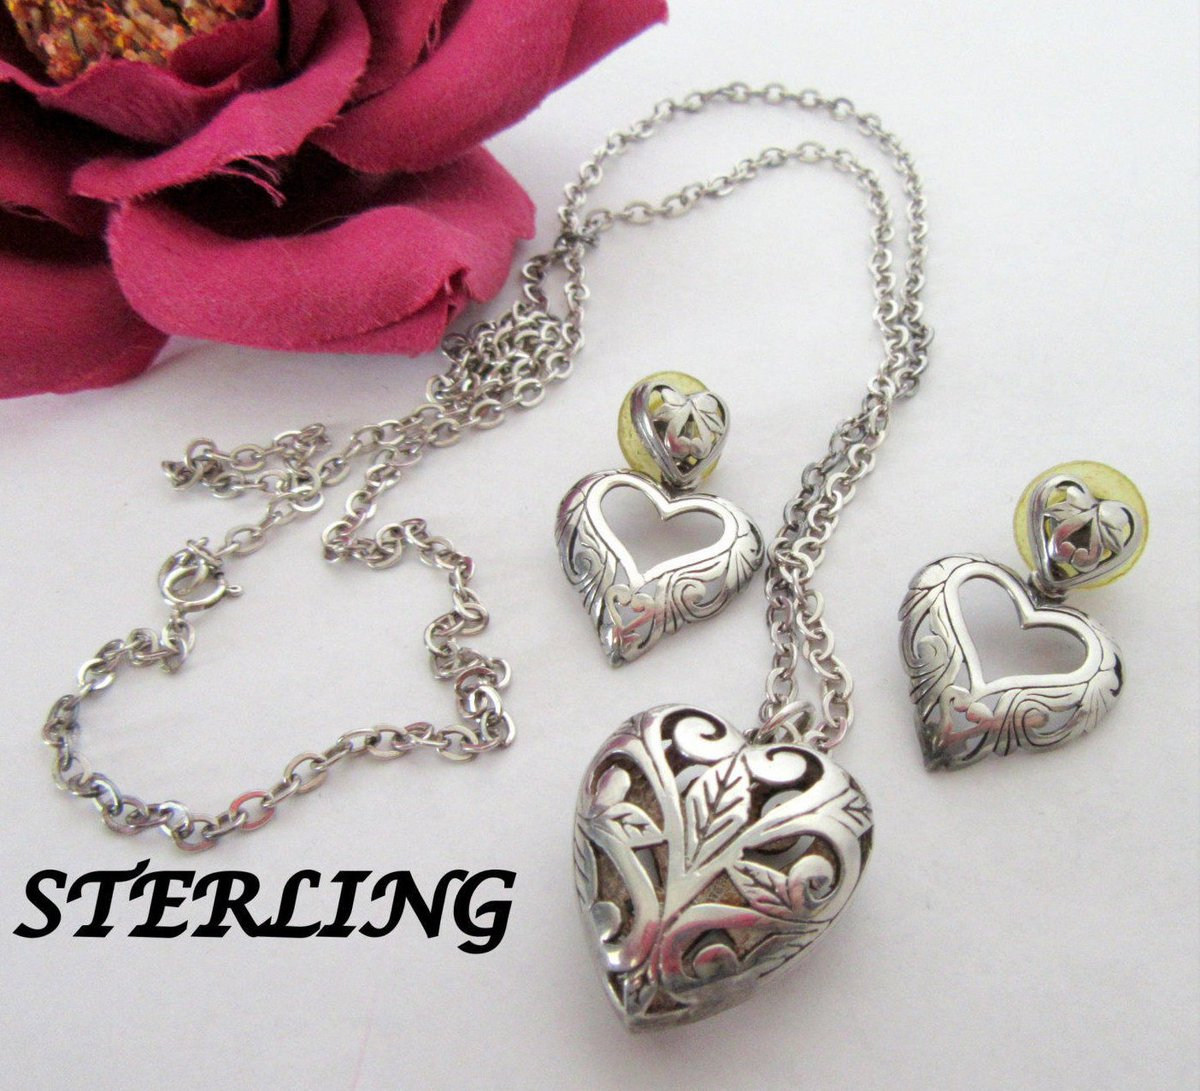 Sterling Heart Necklace Earrings -  Open Work Heart Pendant - Chain Earrings  https:// seethis.co/DALoD/  &nbsp;   #vintage #midcentury <br>http://pic.twitter.com/p2v1HmXlid